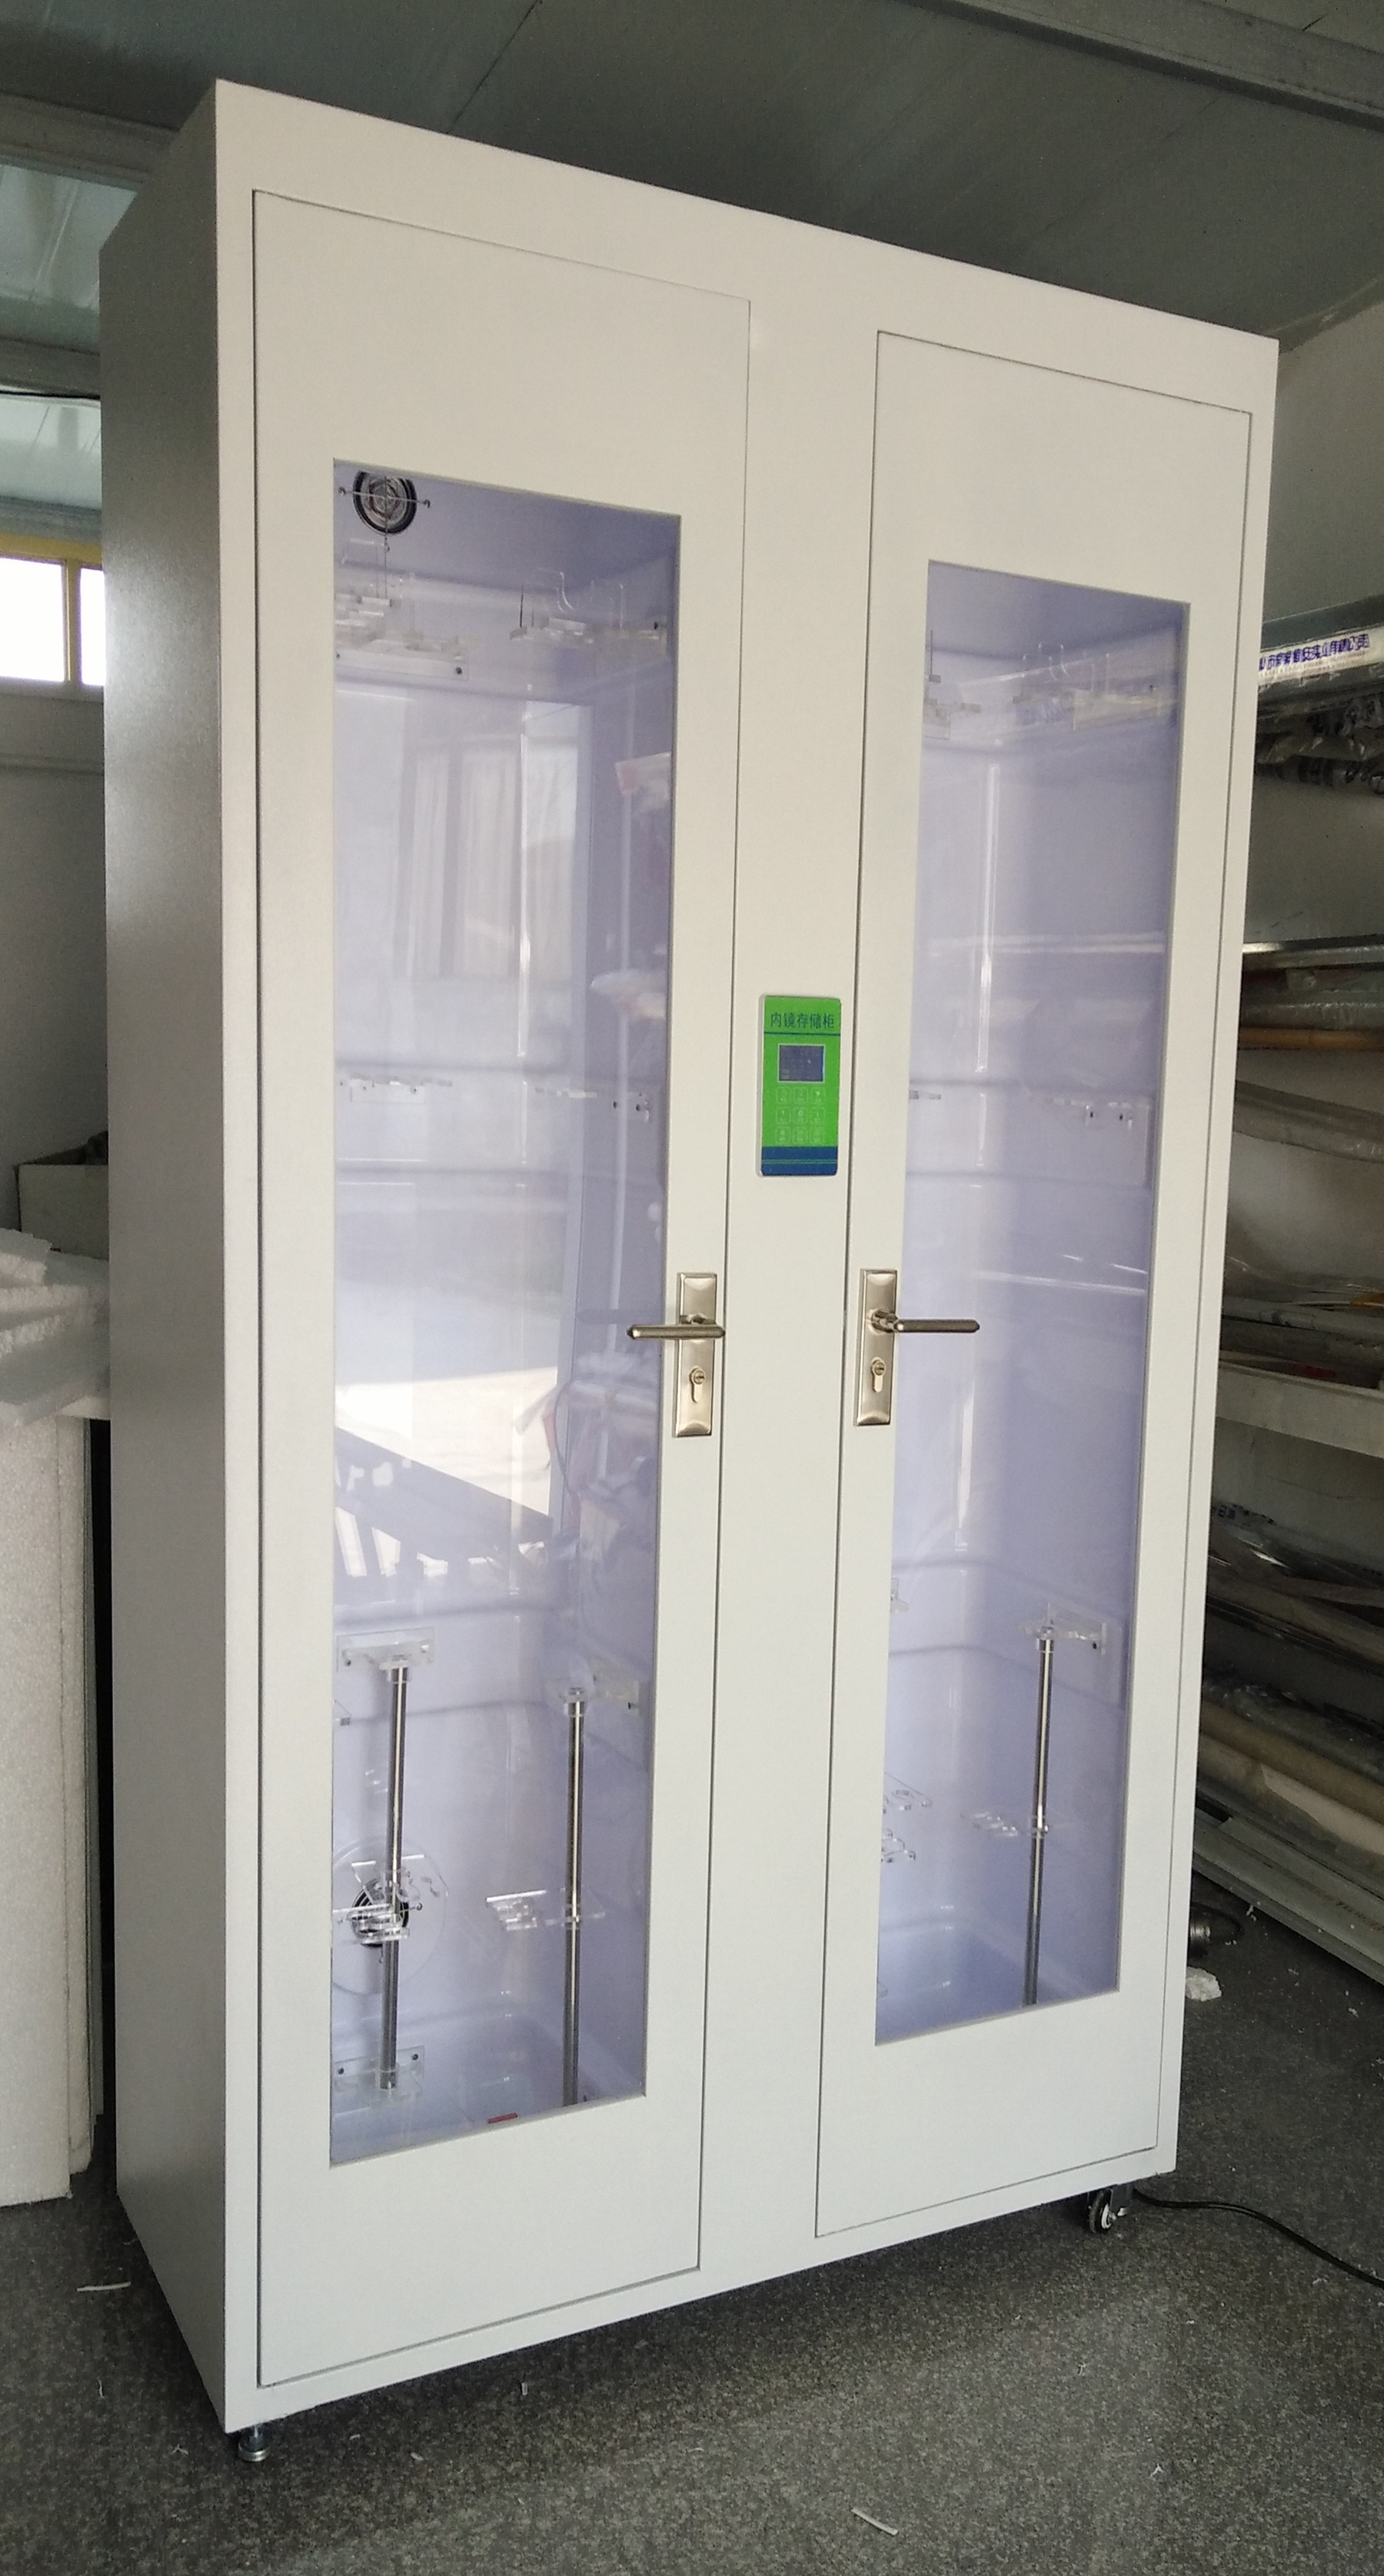 ... Lightbox Moreview · Lightbox Moreview. PrevNext. Endoscope Storage  Cabinet ...